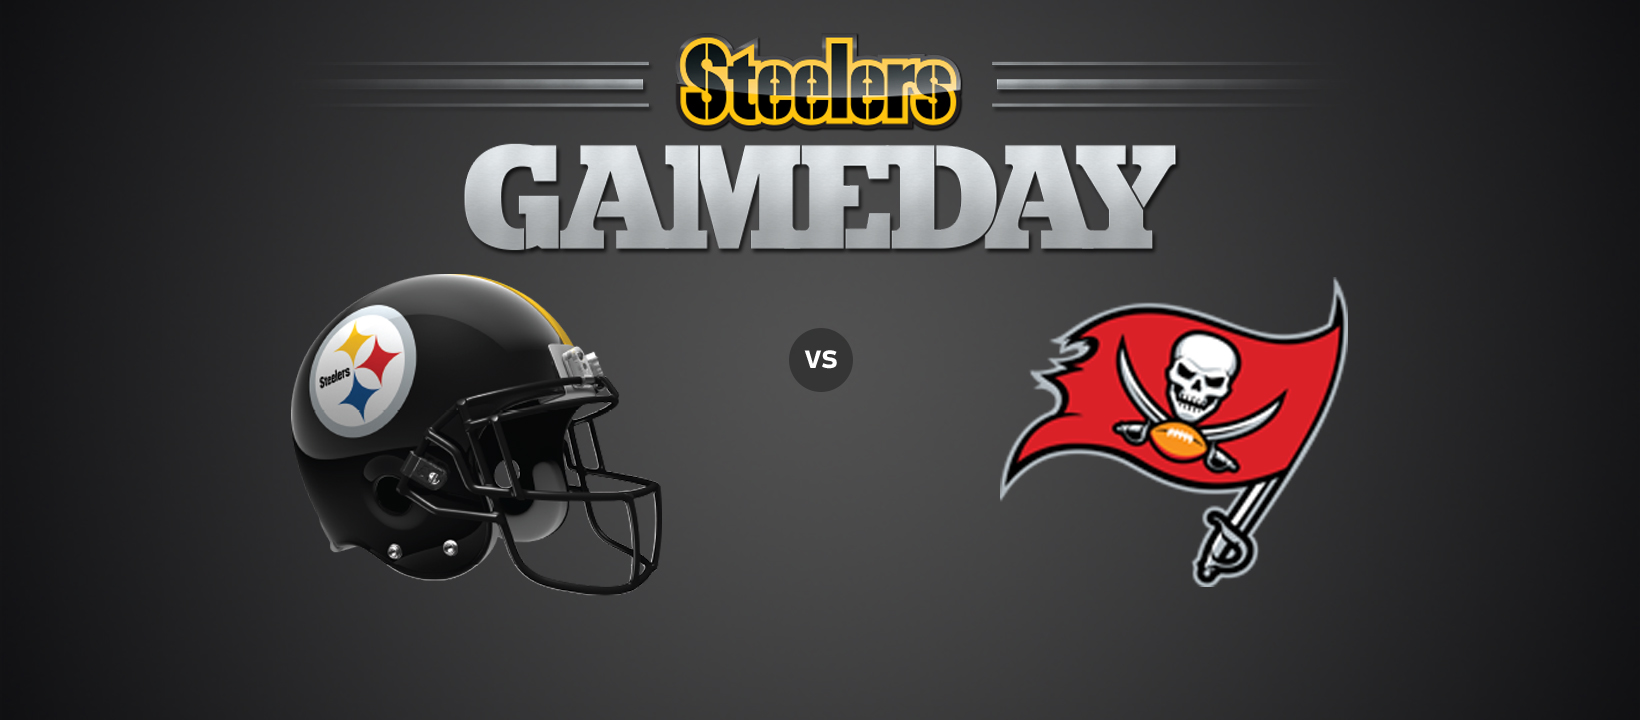 2019 Steelers vs. Buccaneers